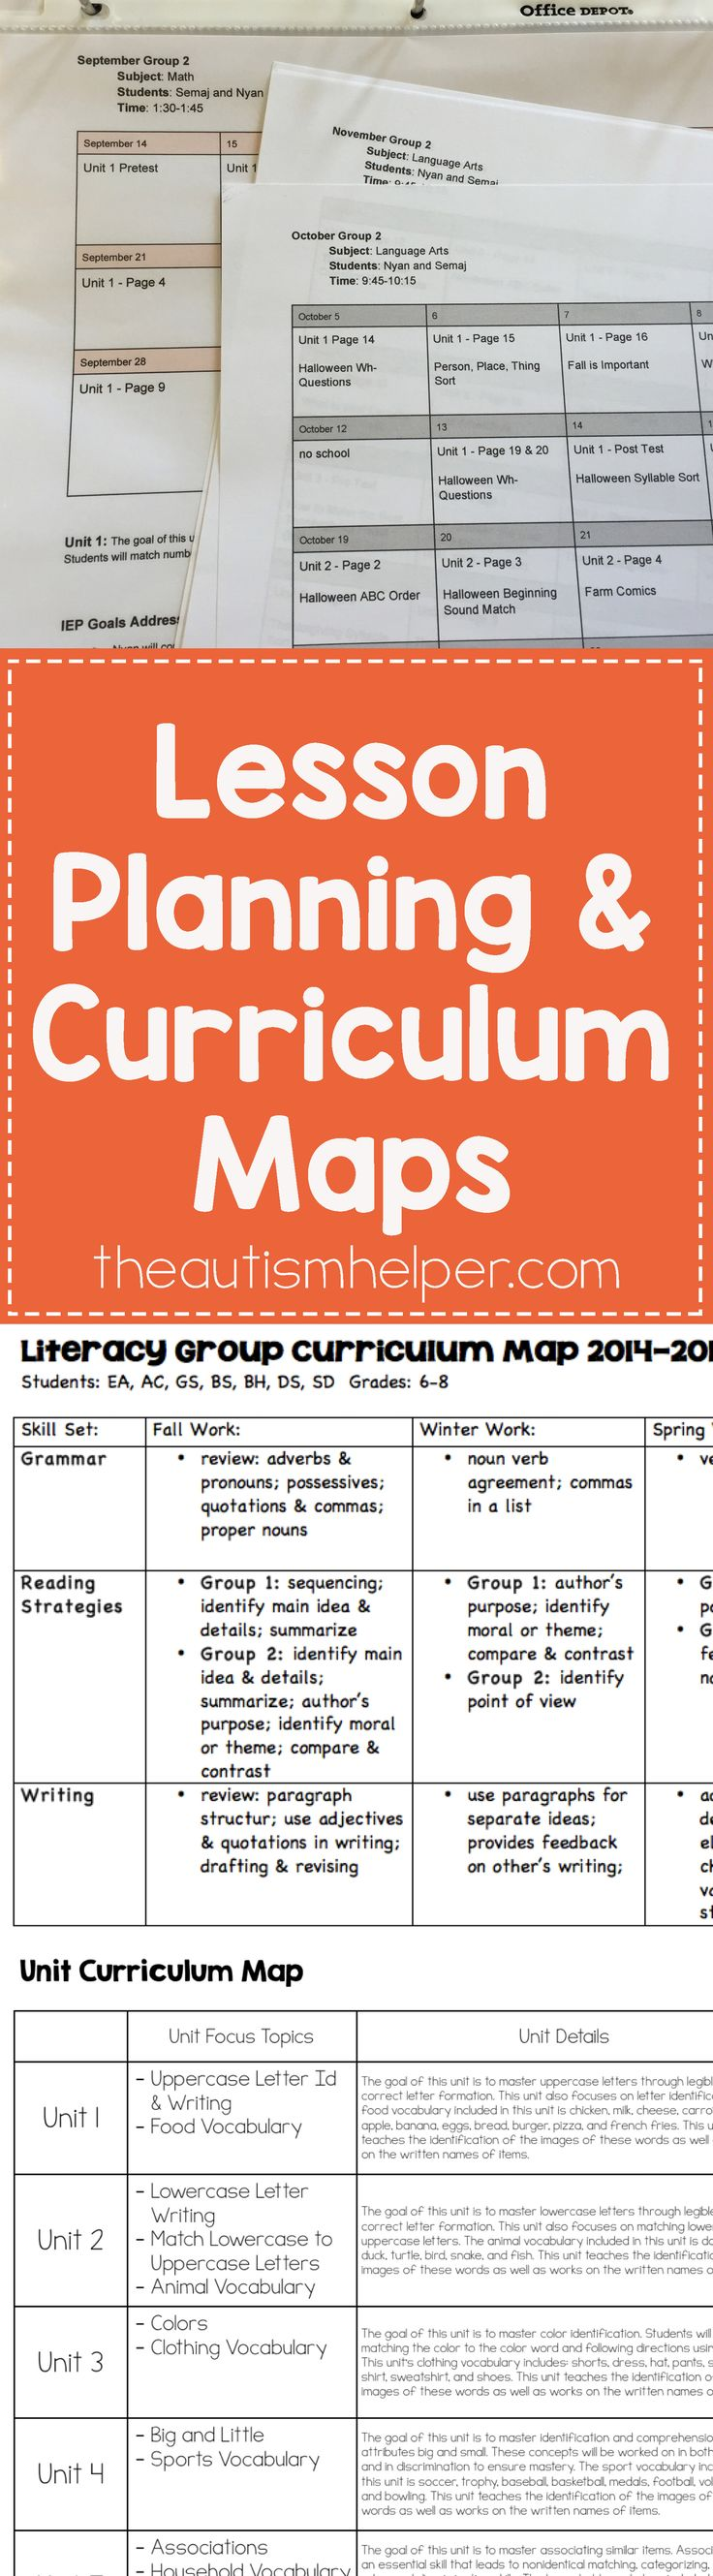 Paperwork will always be a part of our lives, but when it comes Make your paperwork work for you by getting creative with your lesson planning & curriculum maps! From theautismhelper.com